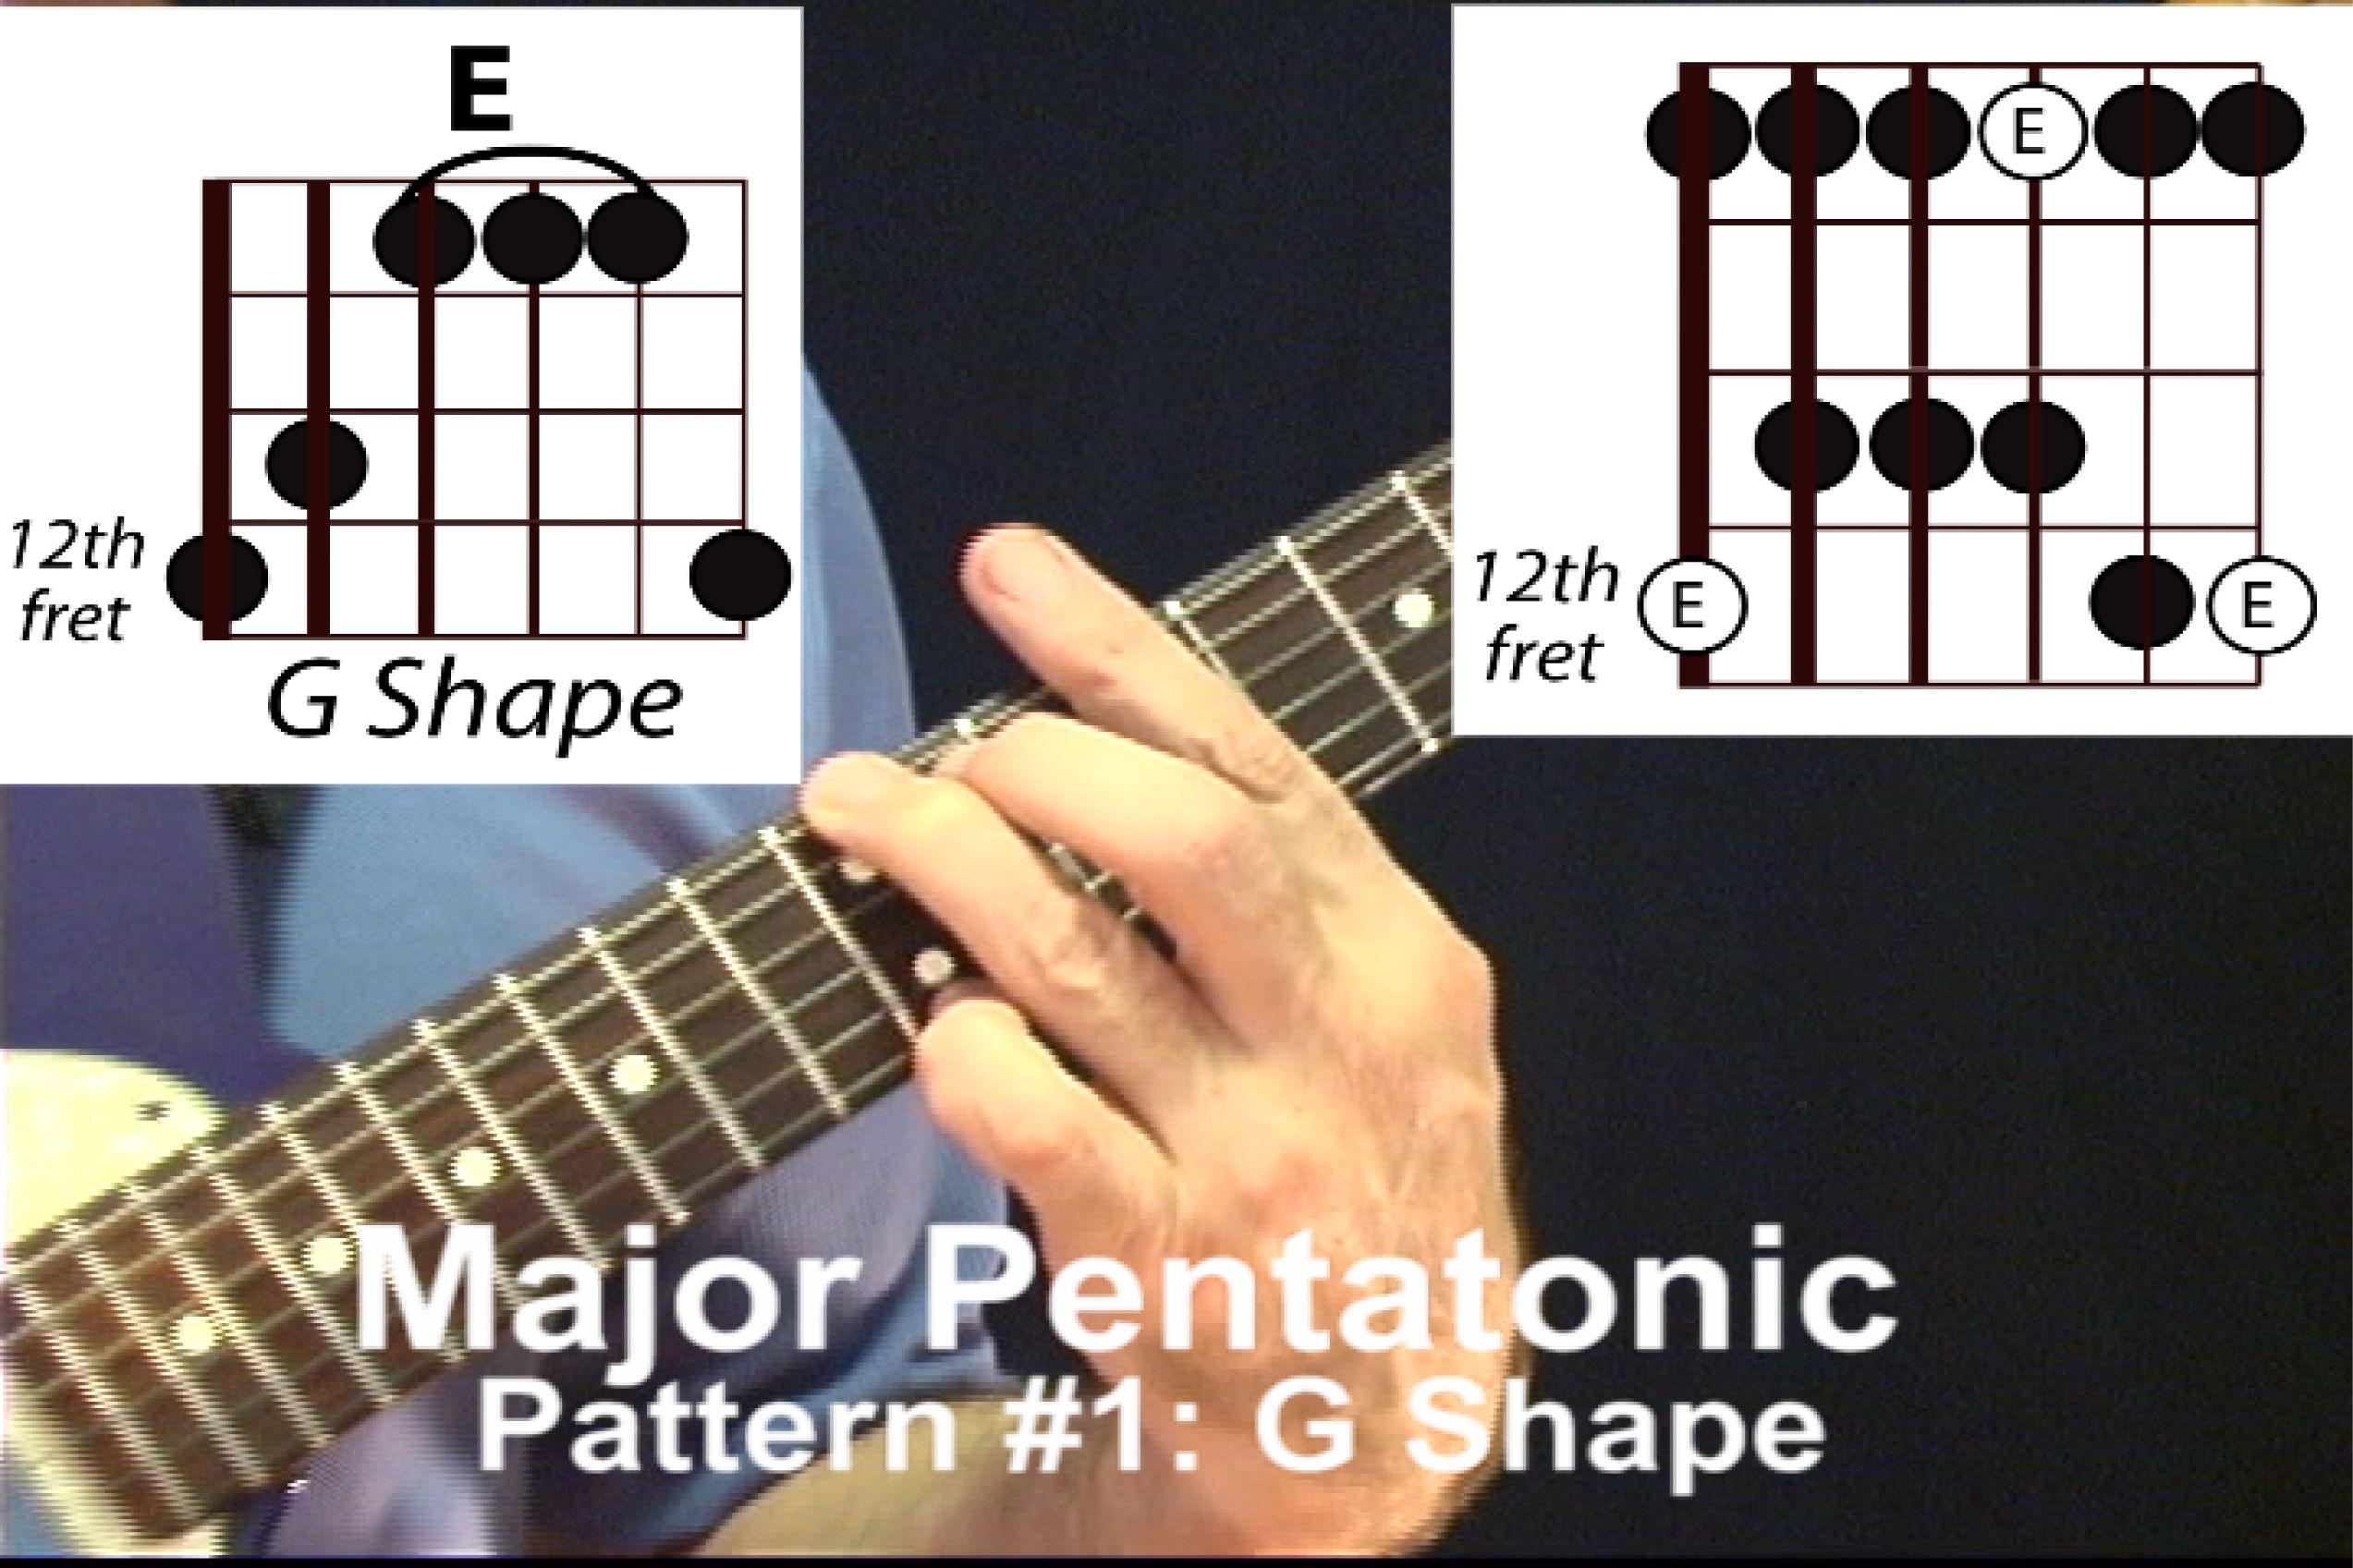 Learn To Play All 5 Positions Of The E Major Pentatonic Scale On The